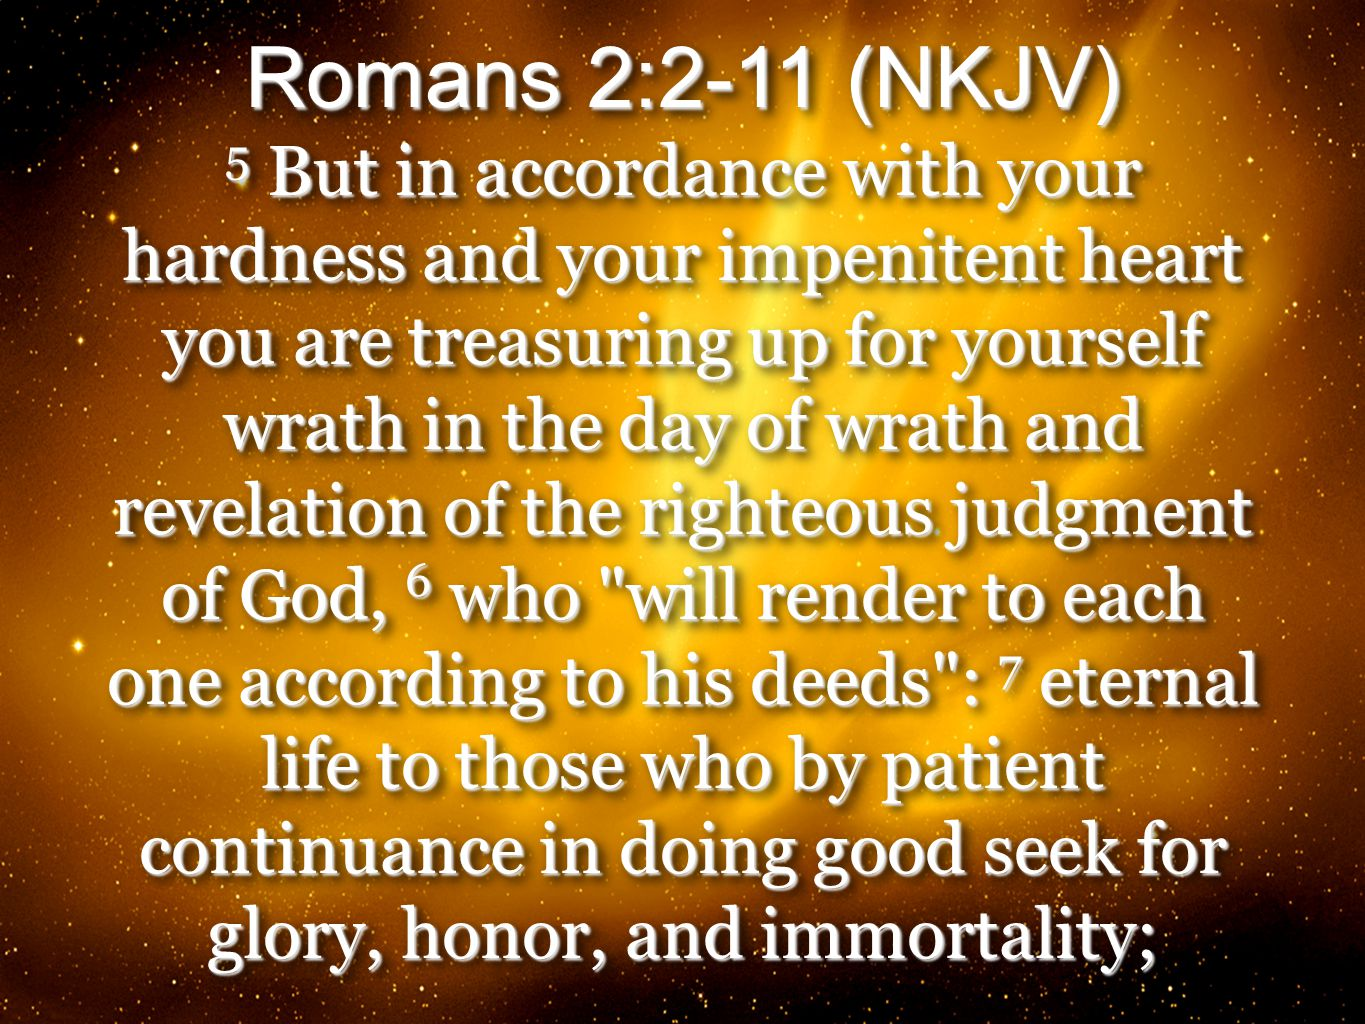 32 Romans 2:2-11 (NKJV) 5 But in accordance with your hardness and your impenitent heart you are treasuring up for yourself wrath in the day of wrath and revelation of the righteous judgment of God, 6 who will render to each one according to his deeds : 7 eternal life to those who by patient continuance in doing good seek for glory, honor, and immortality; Romans 2:2-11 (NKJV) 5 But in accordance with your hardness and your impenitent heart you are treasuring up for yourself wrath in the day of wrath and revelation of the righteous judgment of God, 6 who will render to each one according to his deeds : 7 eternal life to those who by patient continuance in doing good seek for glory, honor, and immortality;